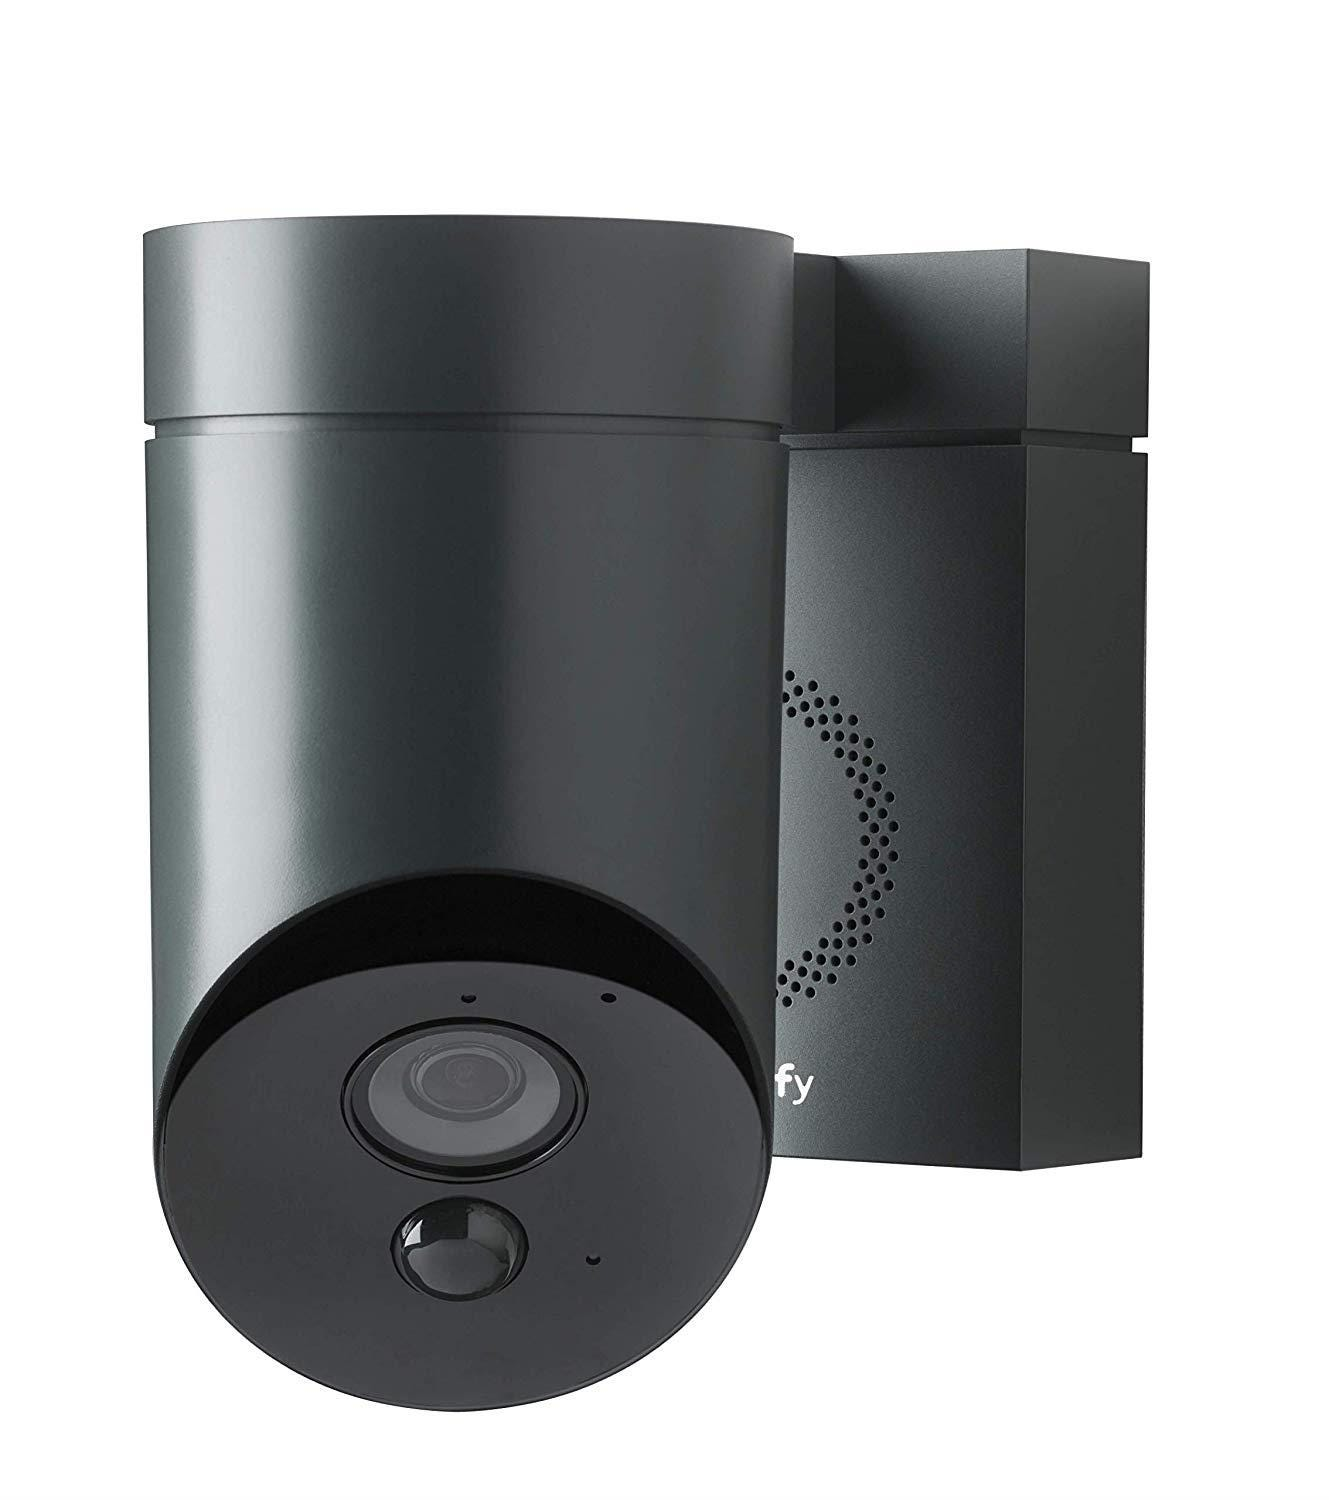 Somfy Outdoor Wireless Full HD Night-Vision Security Camera - Anthracite Grey